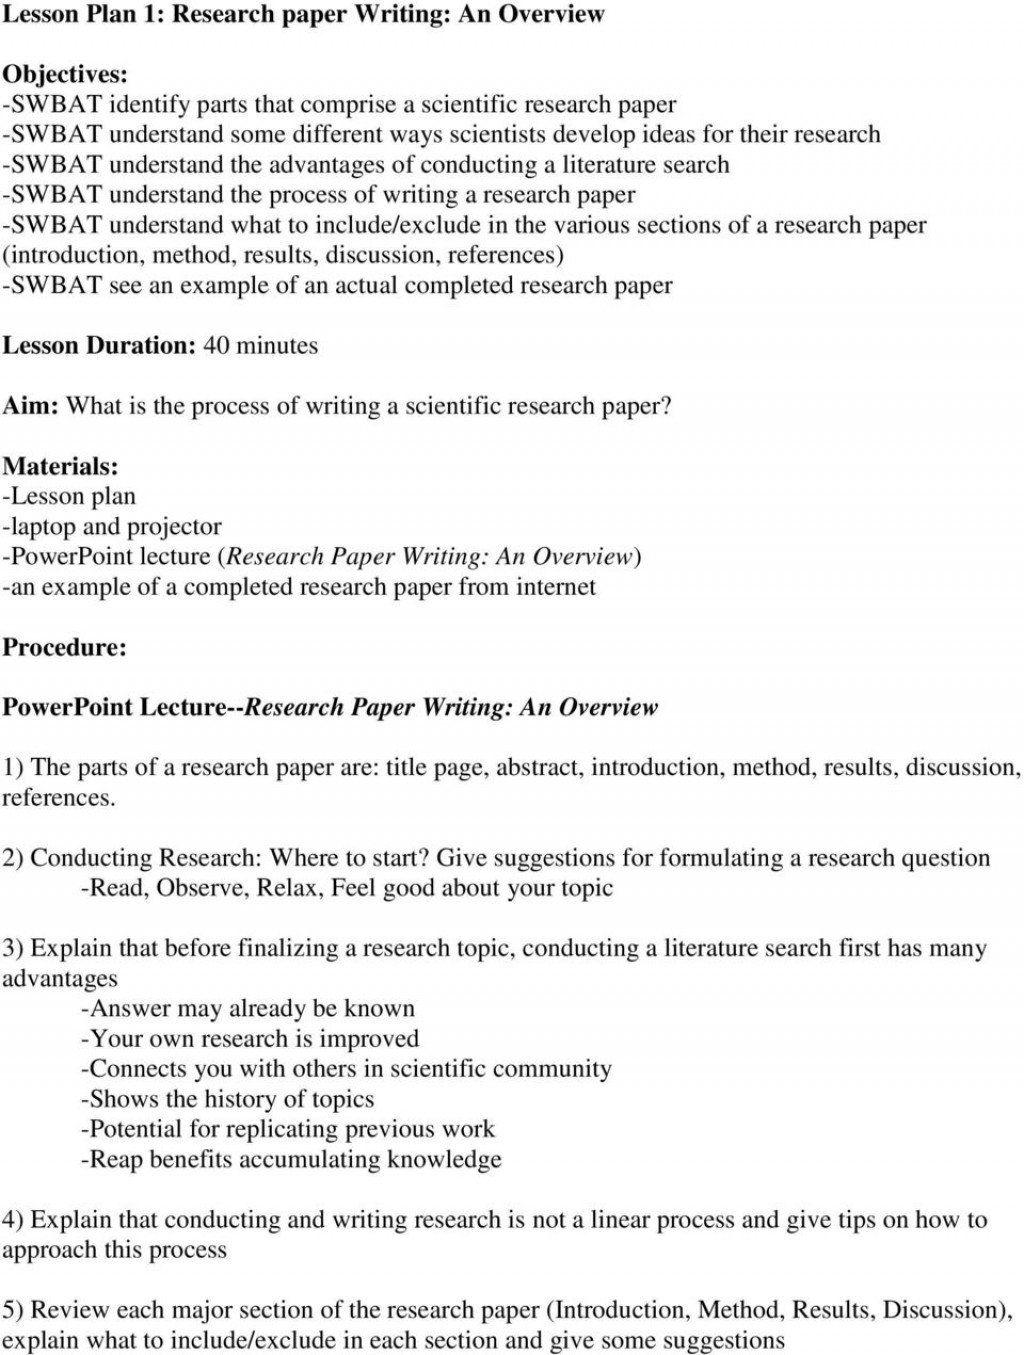 005 Page 1 Research Paper Parts Of Best A Ppt Chapter 5 Qualitative Large